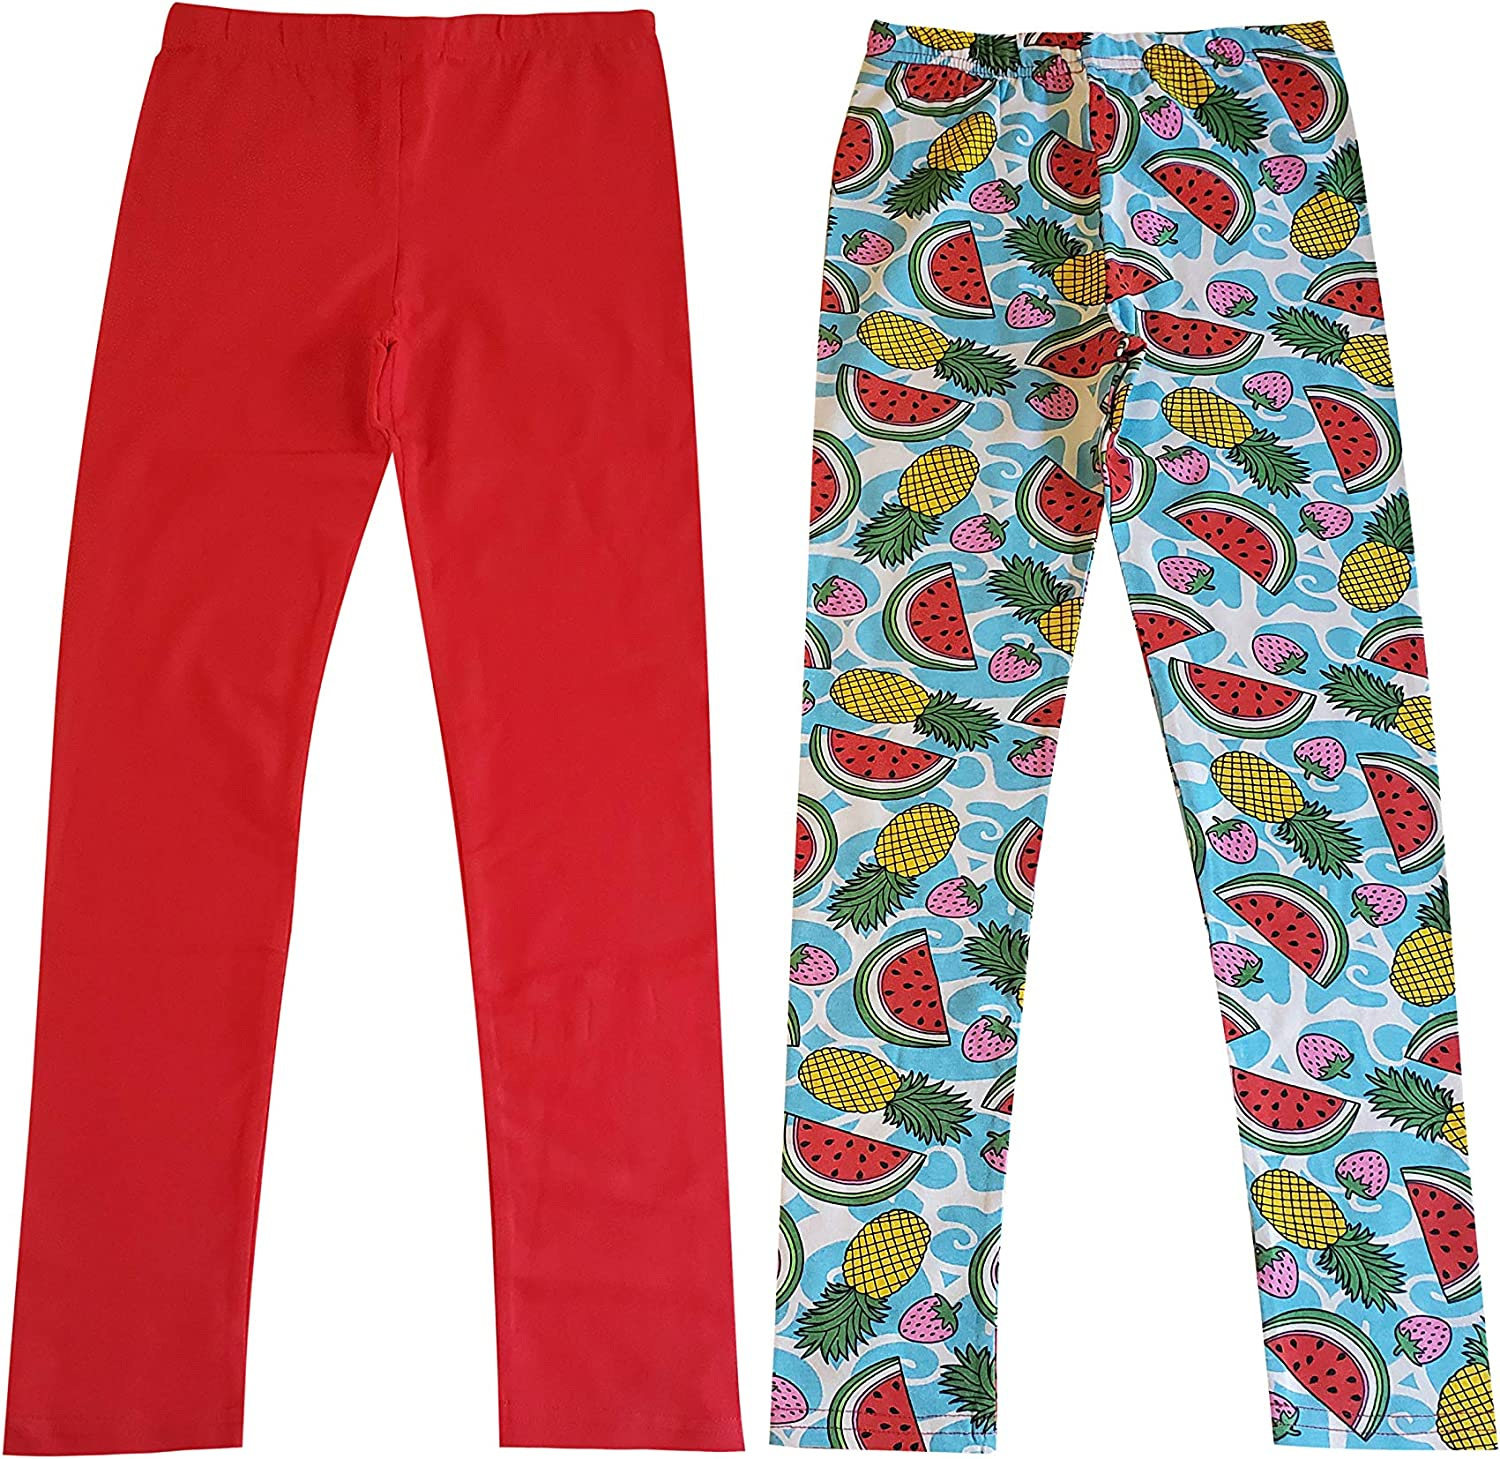 MISS POPULAR 5-Pack Girls Leggings Sizes 4-16 Soft Comfortable Cotton Spandex with Elastic Waistband Many Colors